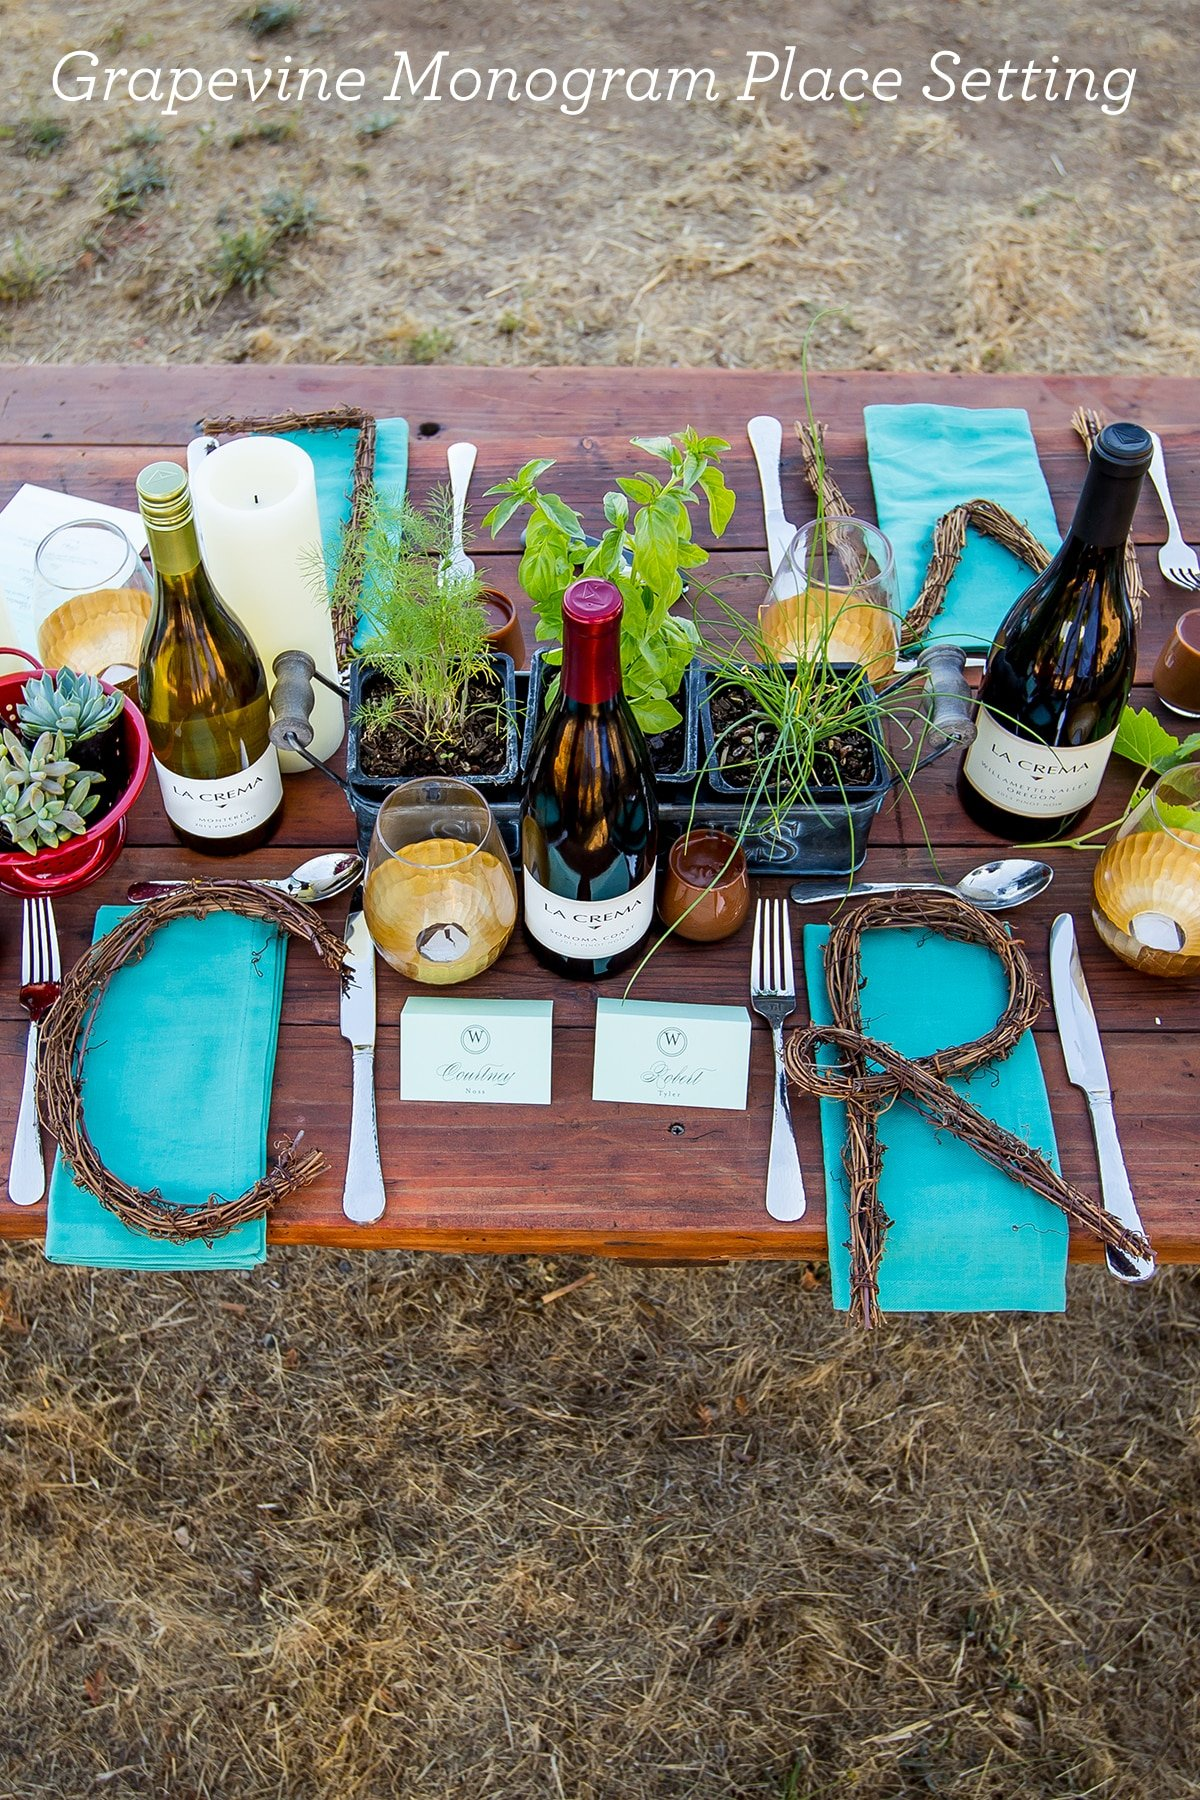 Grapevine monogram place setting- love this idea!